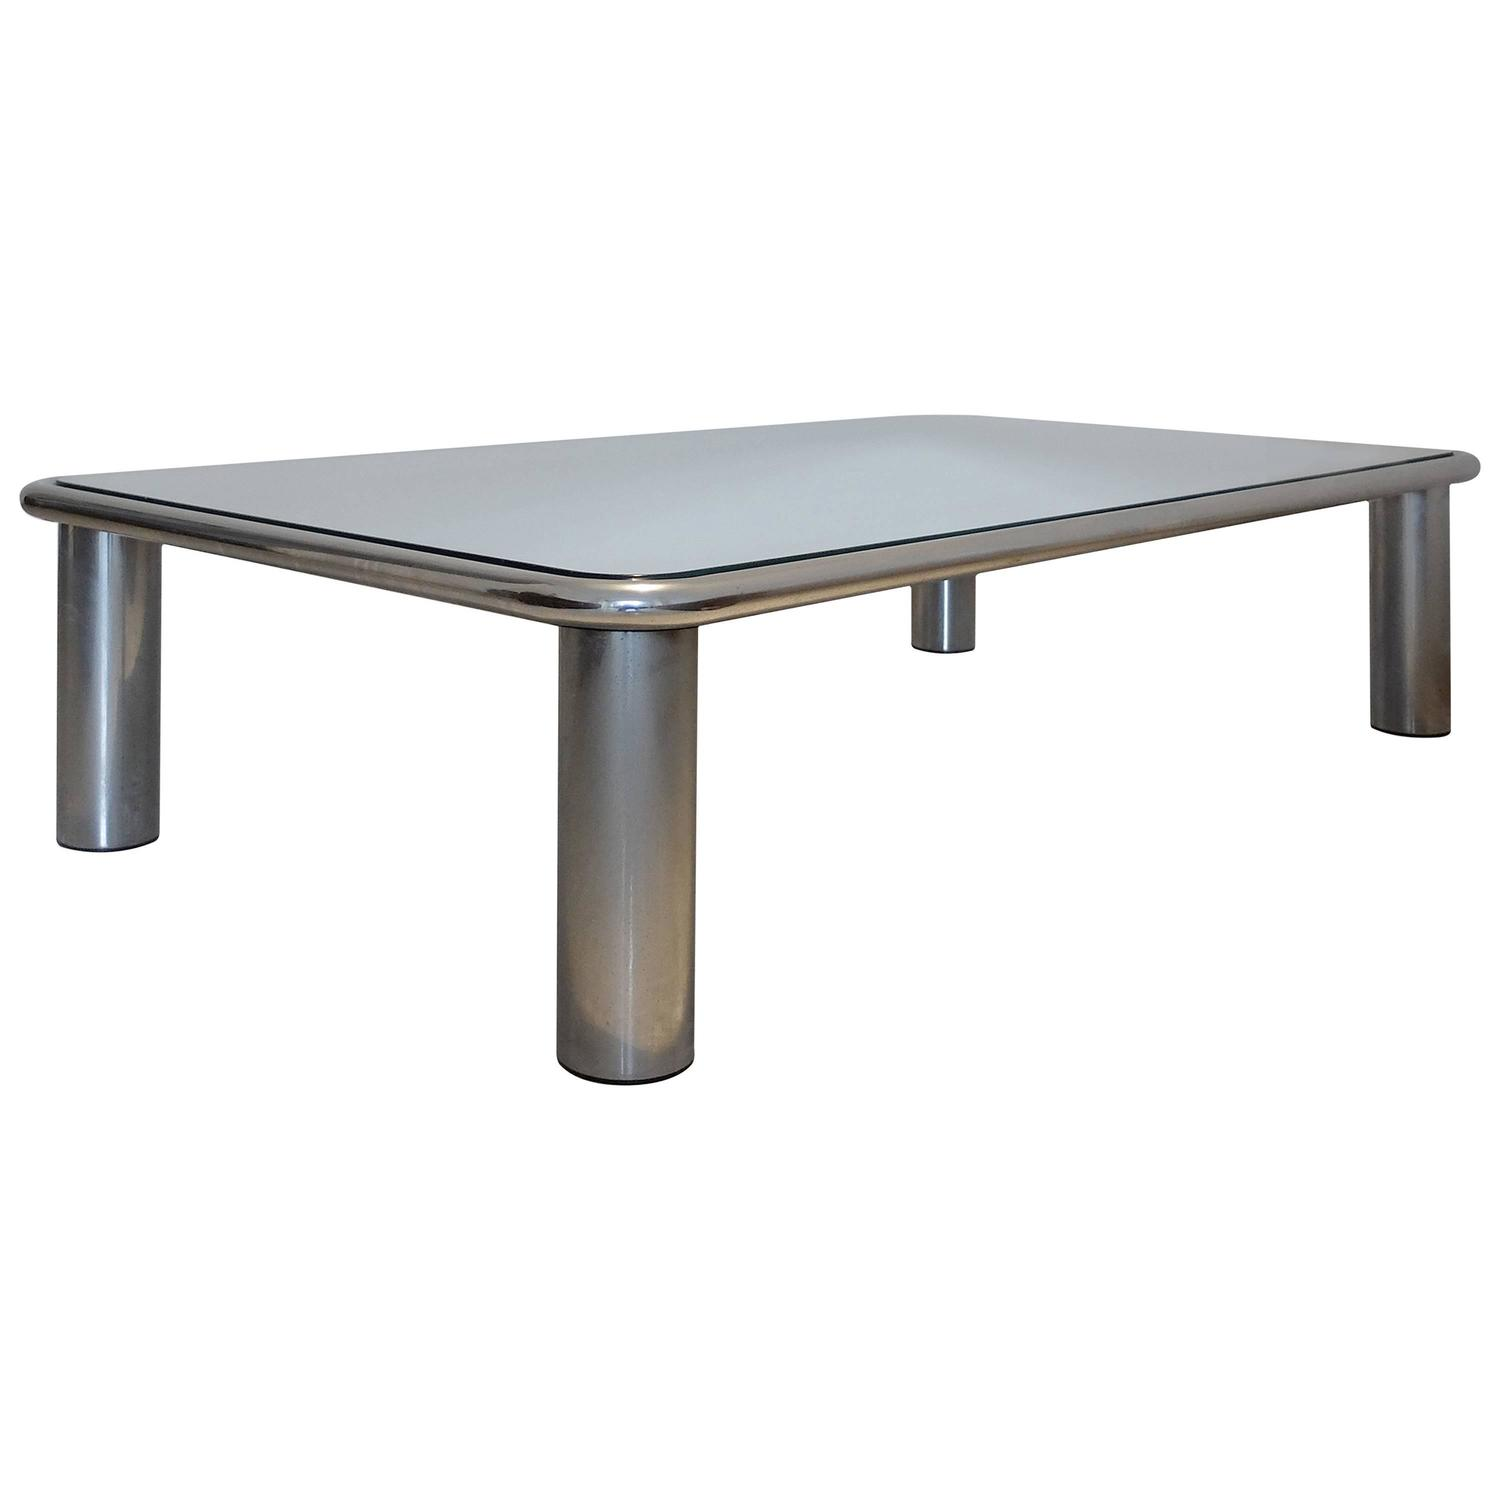 Sesann Coffee Table By Gianfranco Frattini For Cassina For Sale At 1stdibs